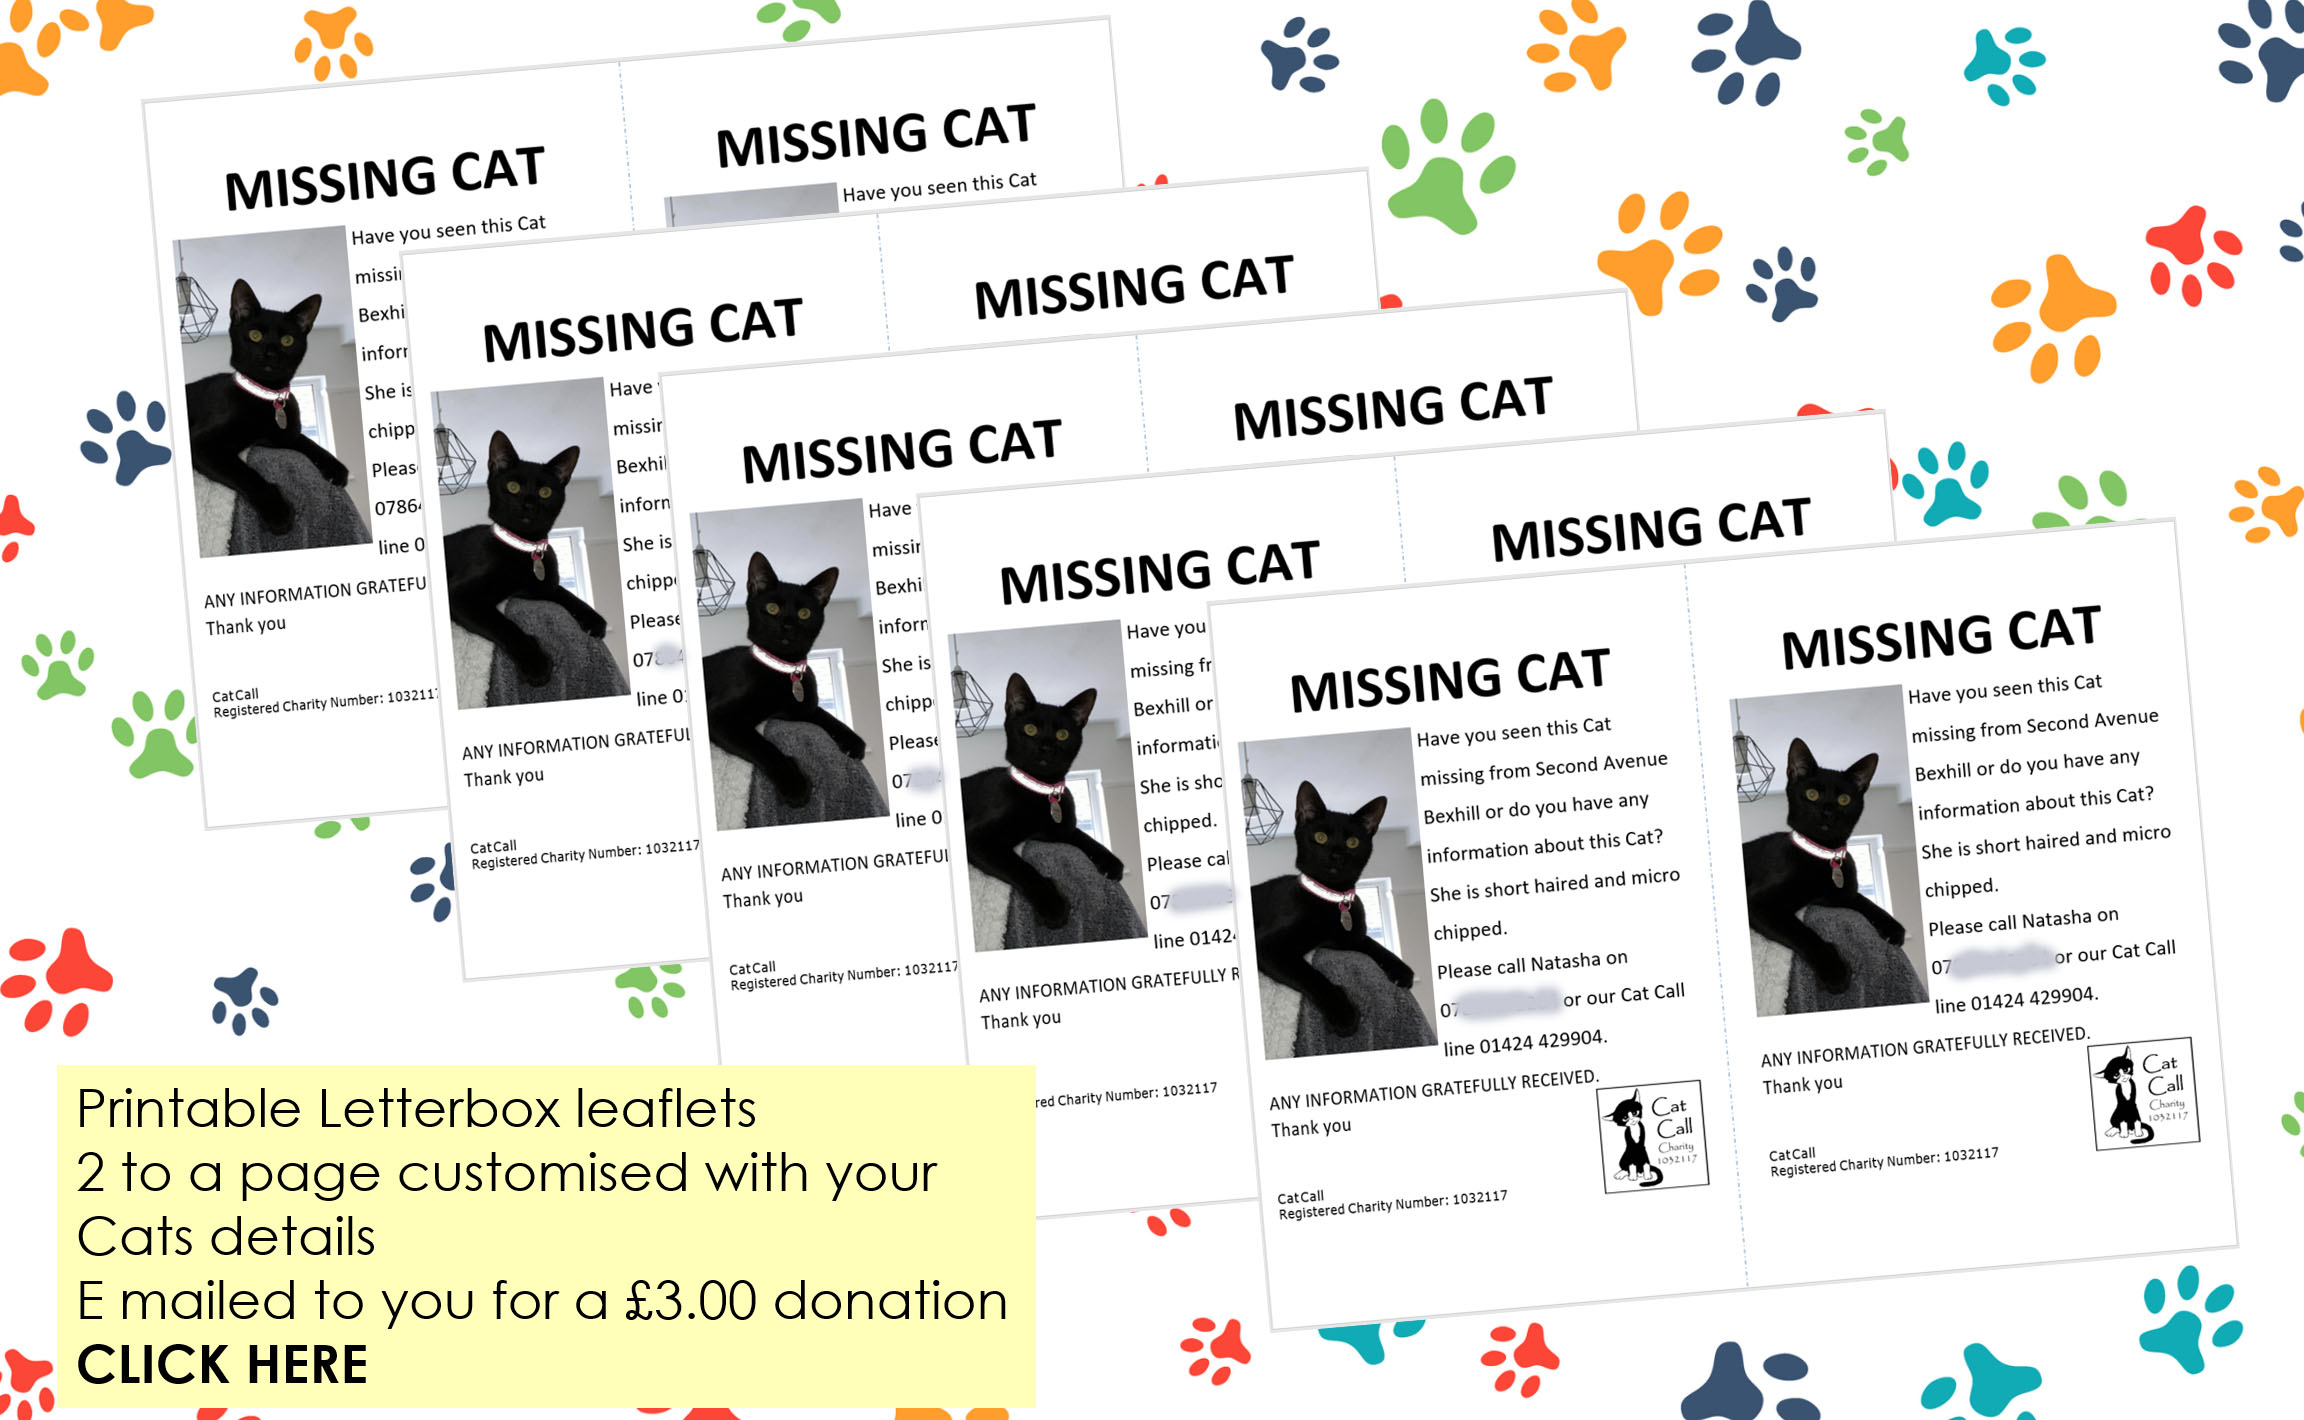 Cat Call lost Cat letterbox leaflets